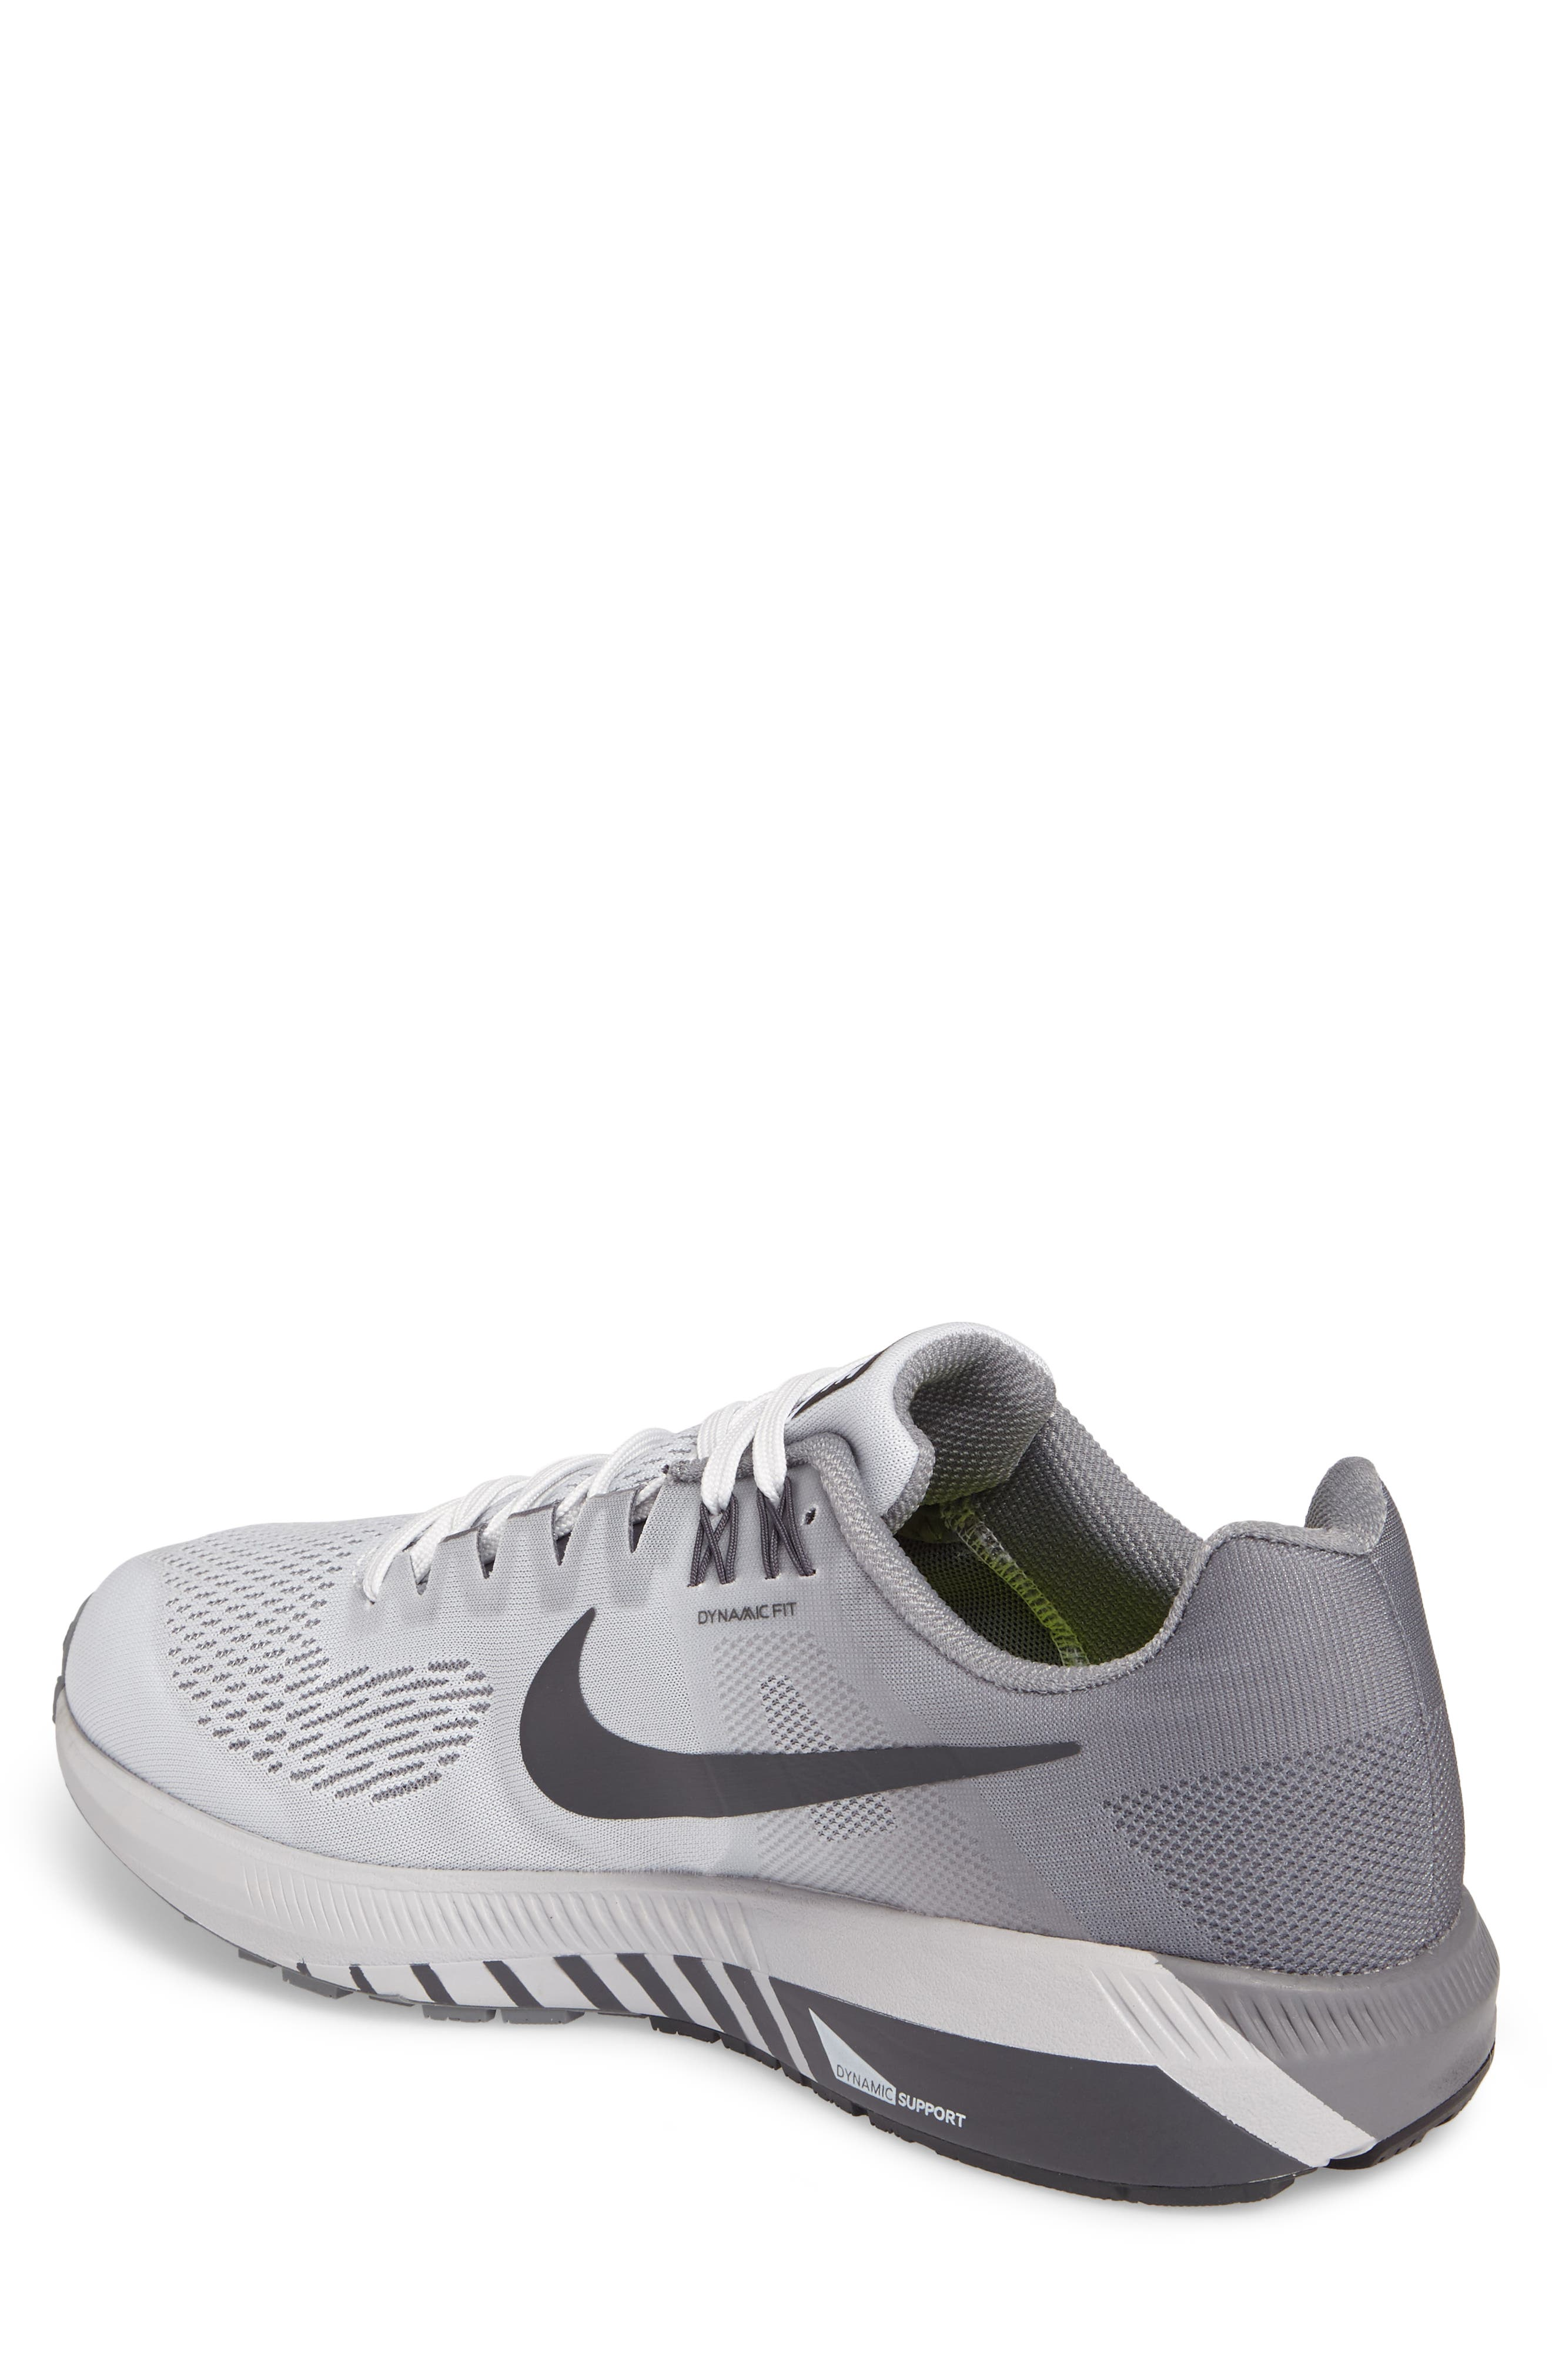 Air Zoom Structure 21 Running Shoe,                             Alternate thumbnail 2, color,                             Platinum/Anthracite/Cool Grey